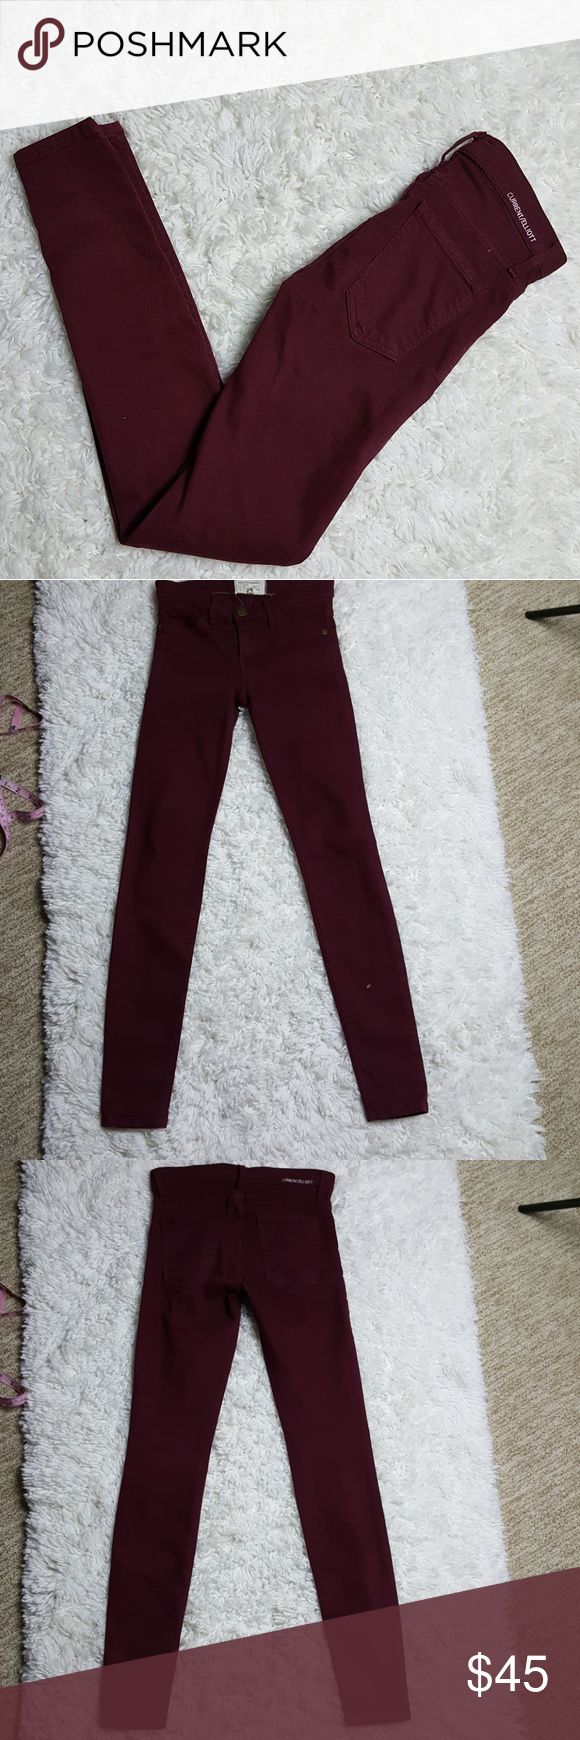 "Current Elliott The Ankle Skinny Bordeaux Jeans 24 A true eighties skinny Jean that hugs every curve. This jeans is to be worn very fitted and low on the waist. Preloved, very light fading along seams. No other flaws. Women's size 24.  Approximate Measurements Laid Flat- Waist- 13.5"" Length- 38"" Inseam- 30""  88% Cotton 9% Polyester 3% Elastane  #1210 Current/Elliott Jeans Ankle & Cropped"